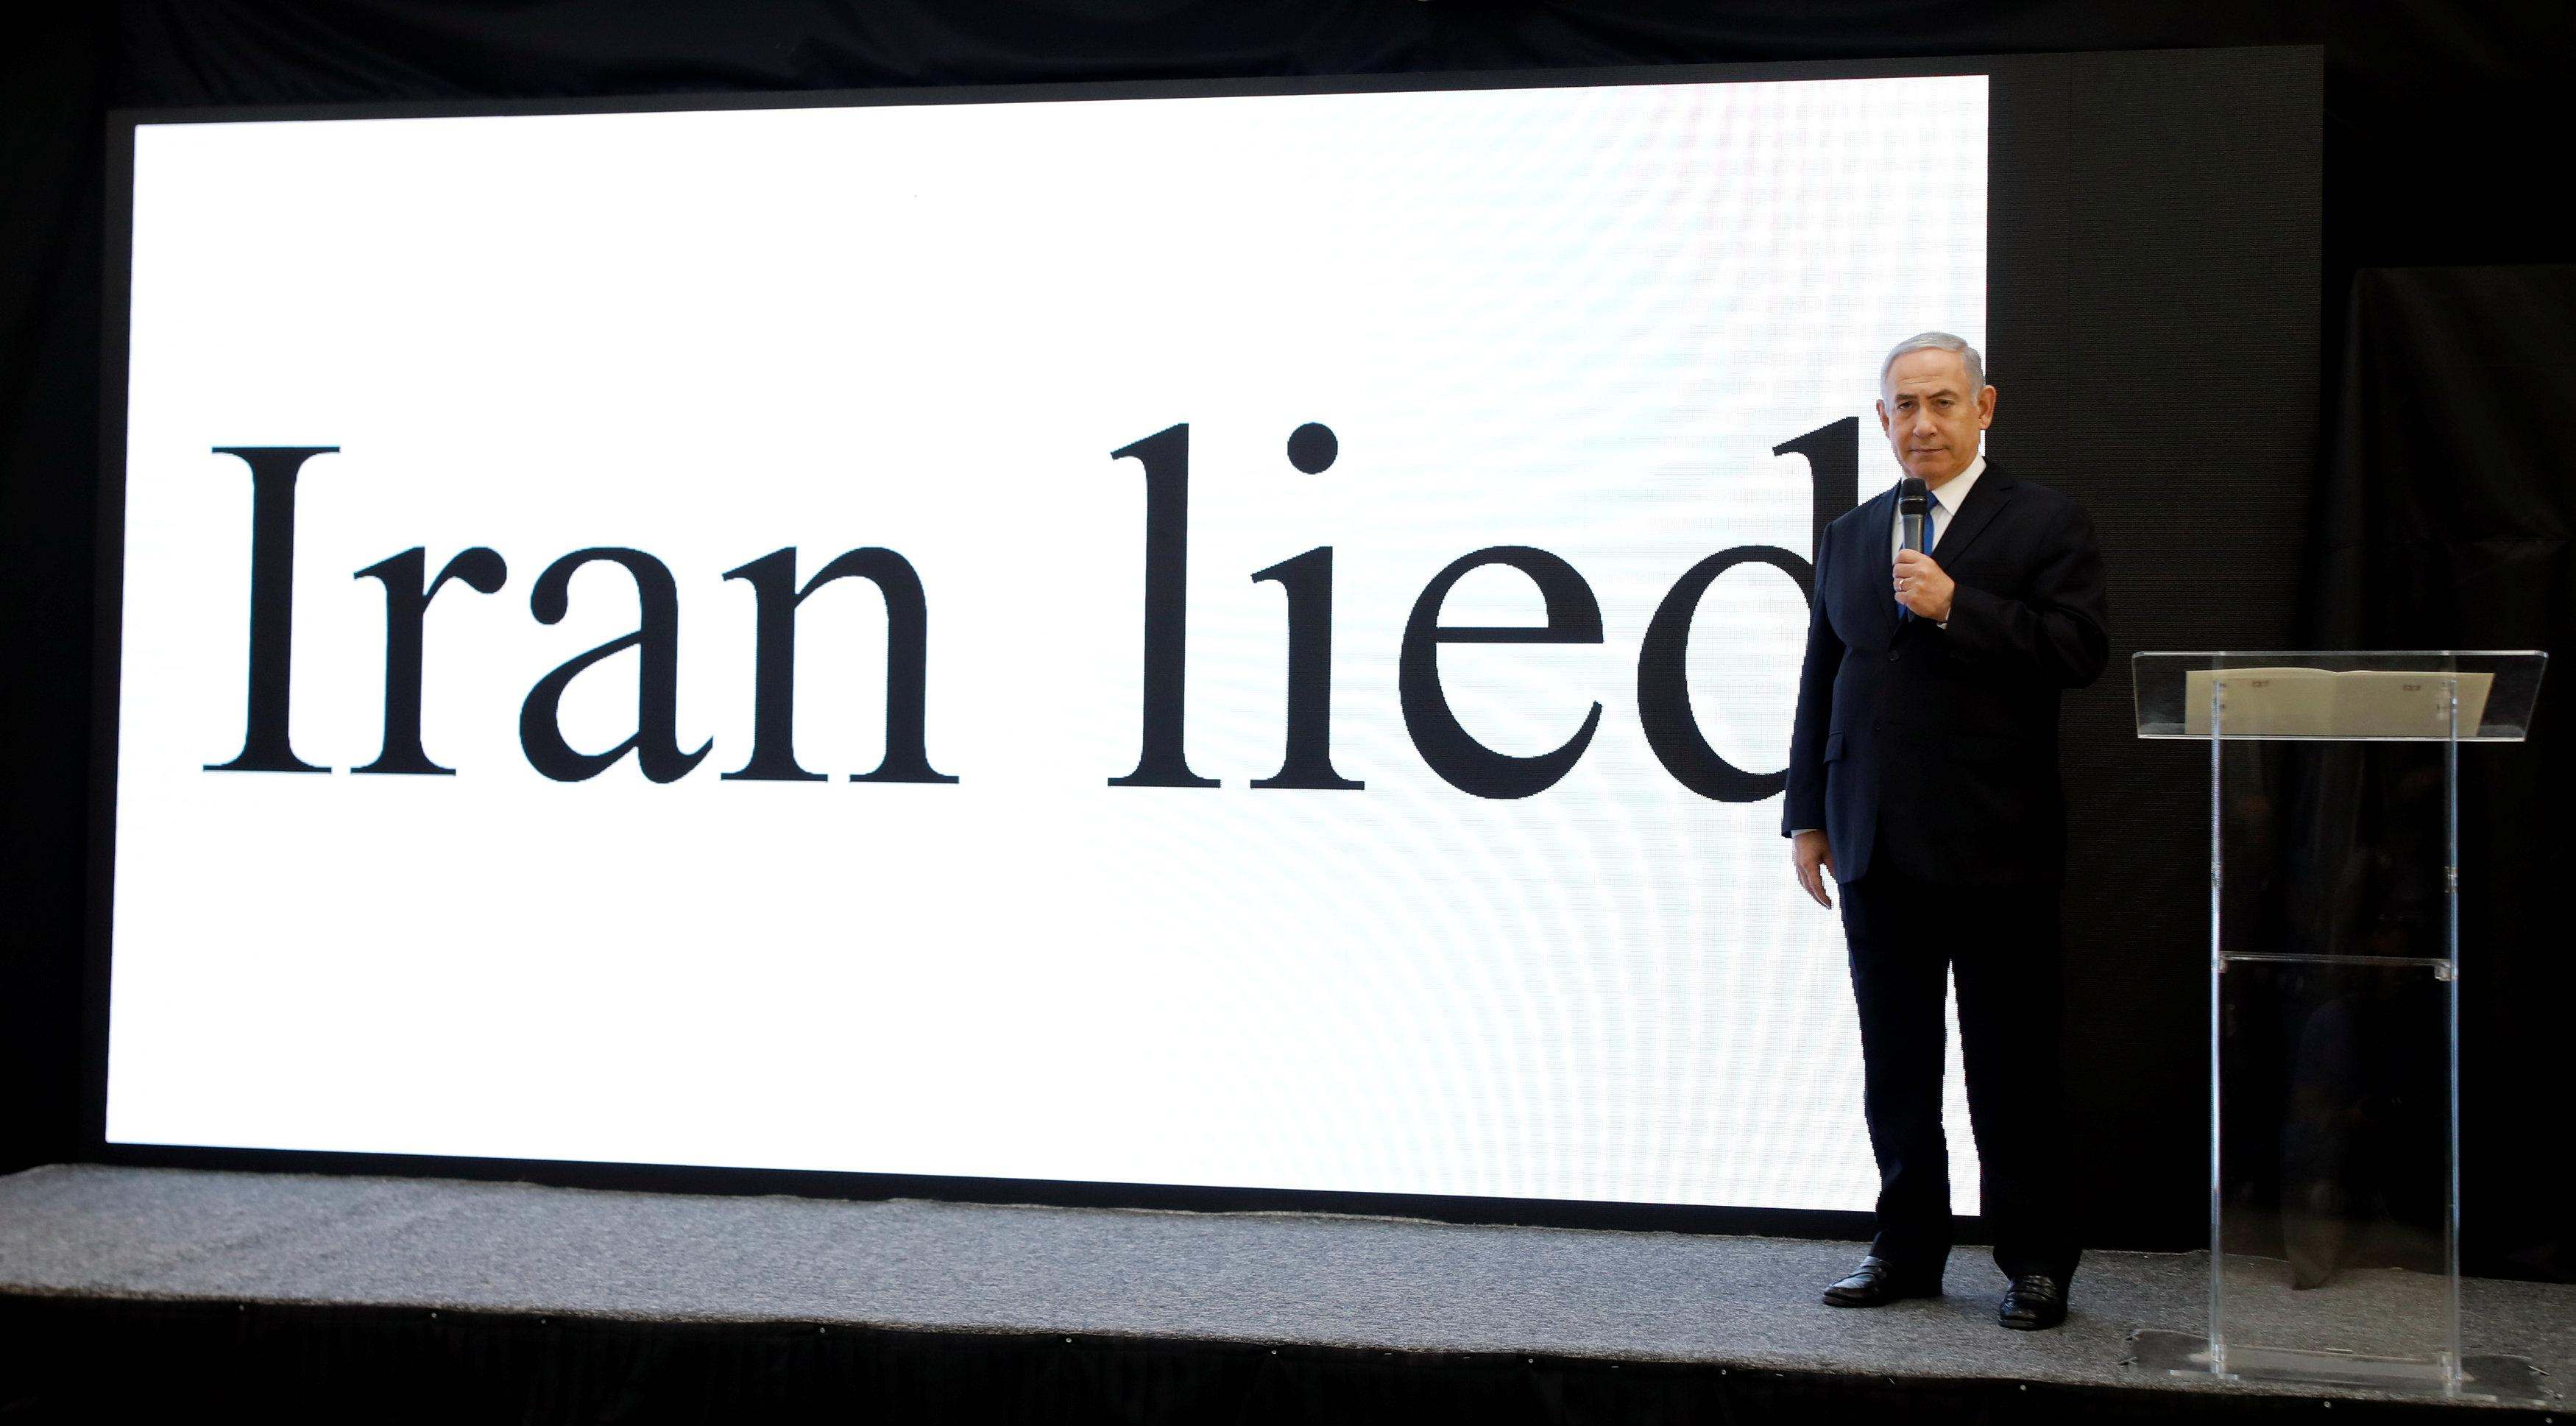 Israel says Iran lied on nuclear arms, pressures U.S. to scrap deal